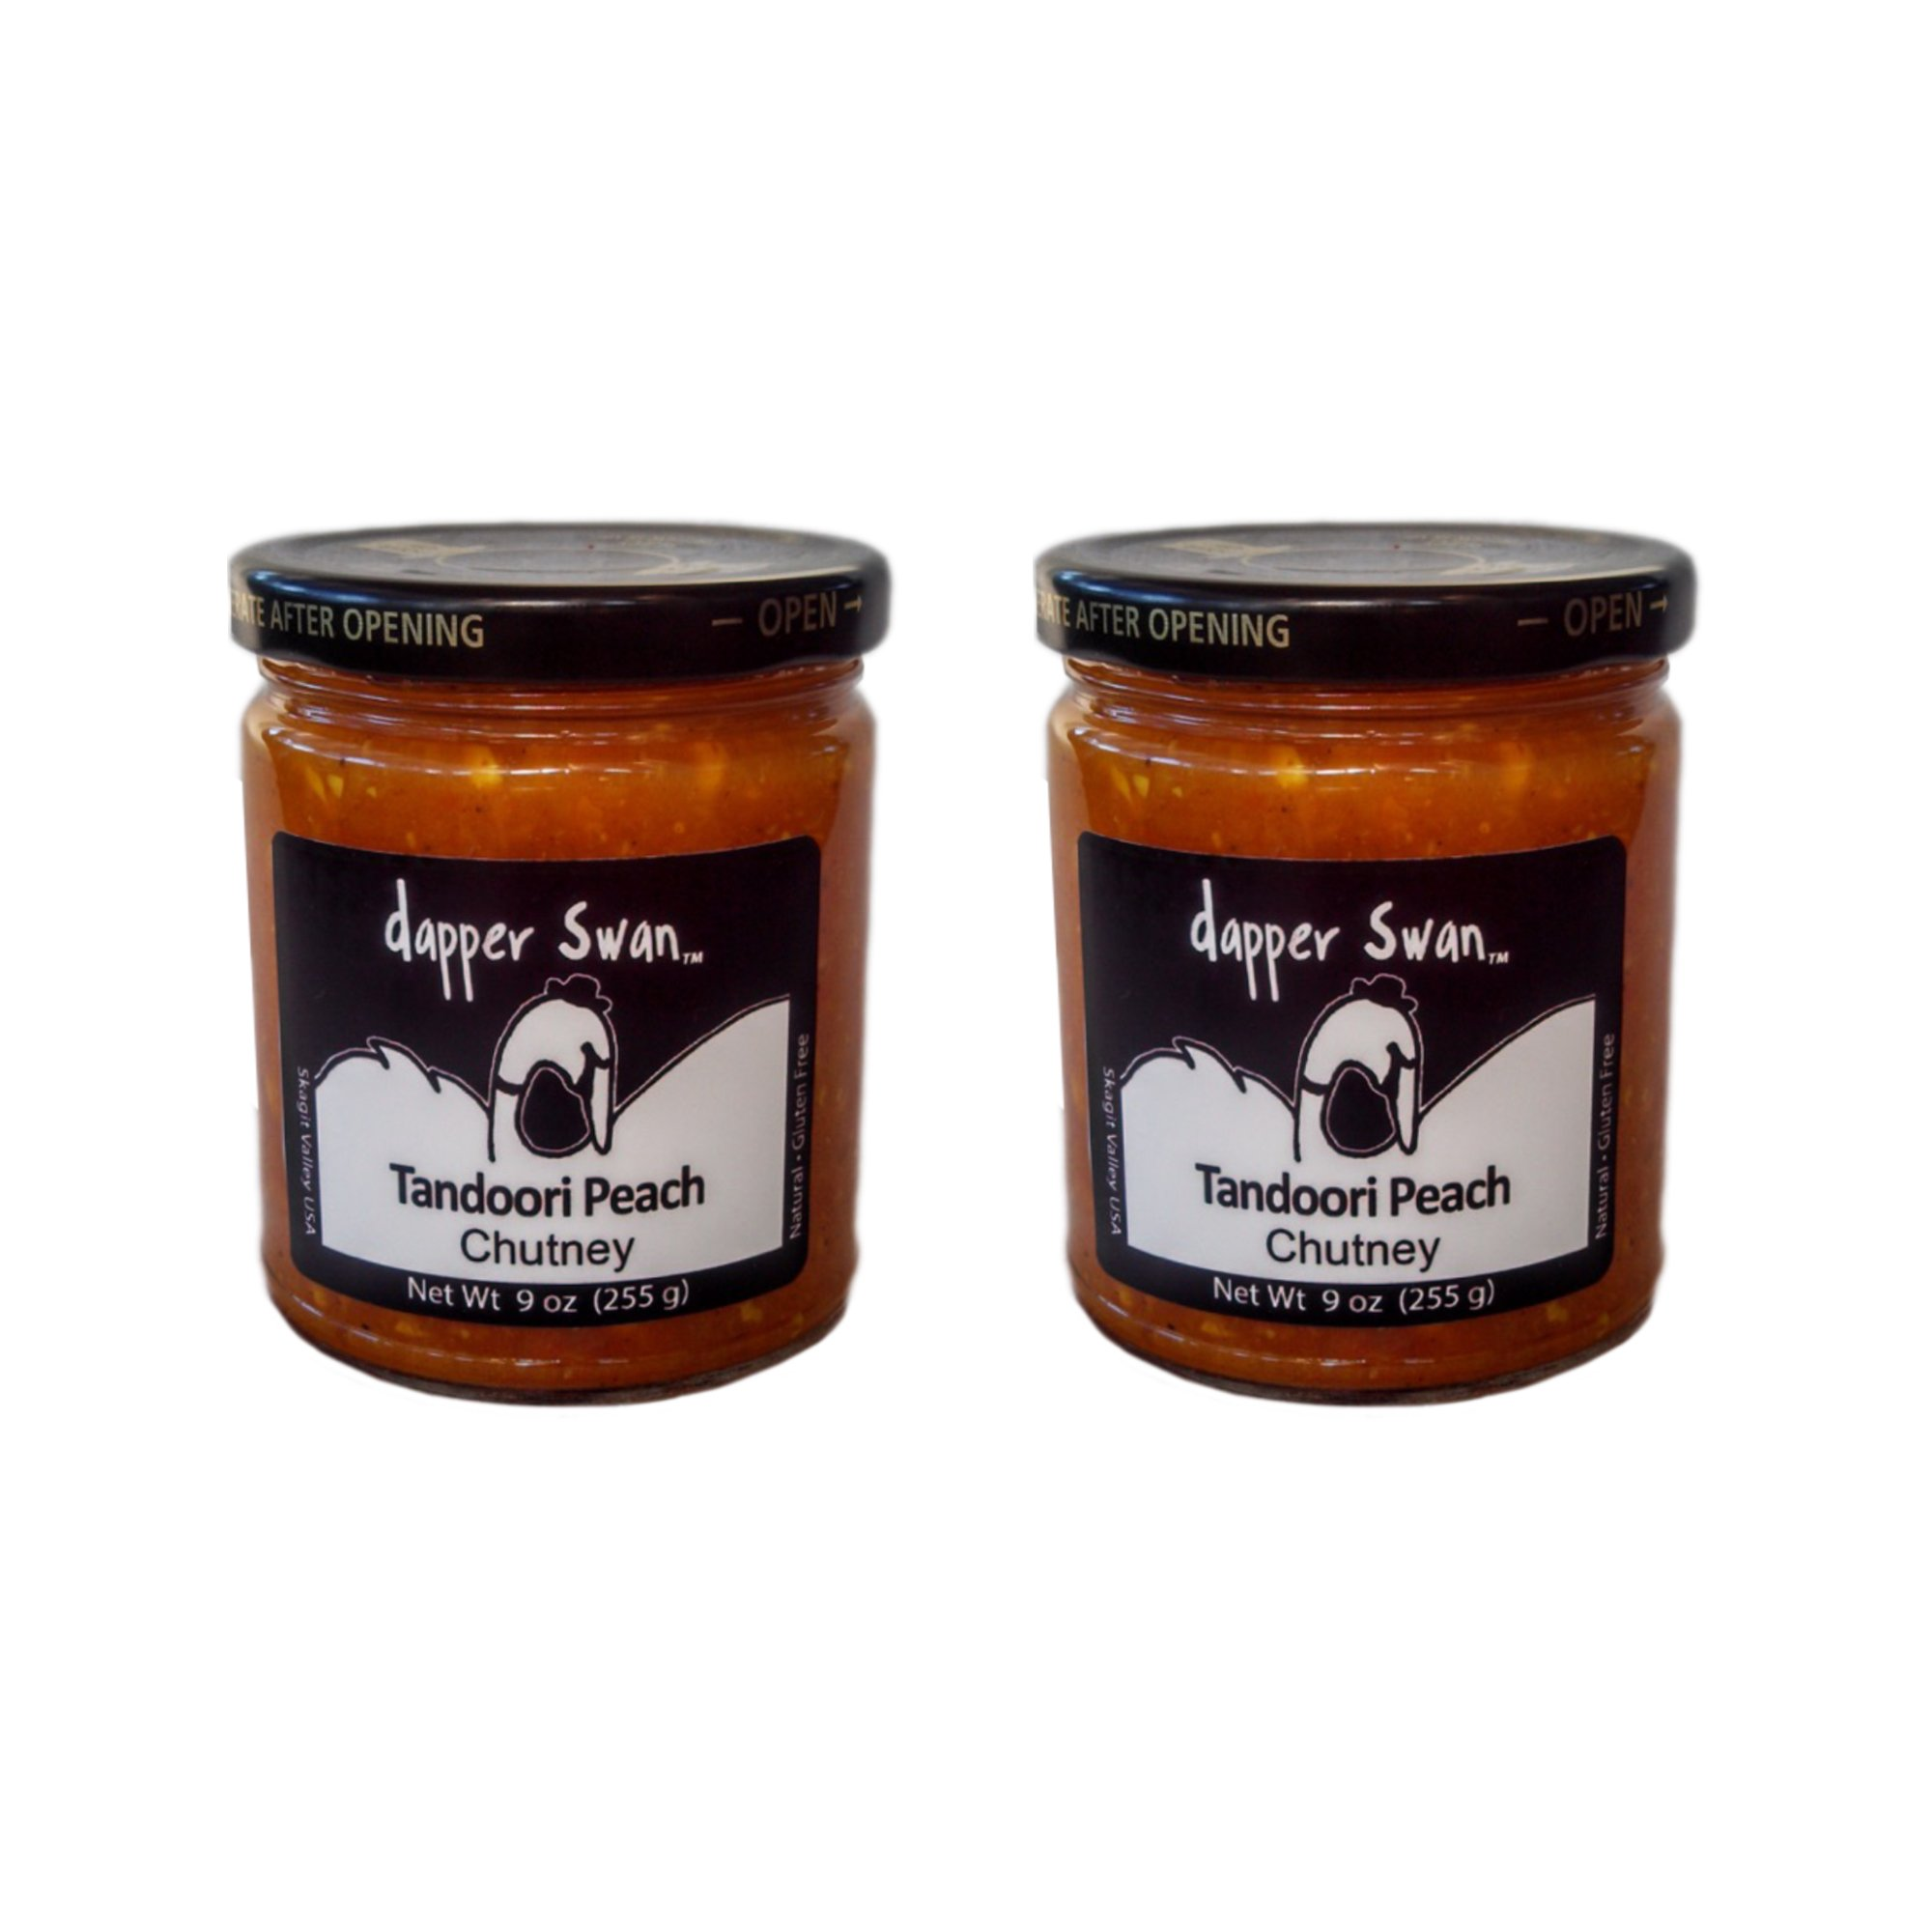 Tandoori Peach Artisan Gourmet Chutney, Two 9-oz Jars - All Natural, GF, Vegan, No Fat, Made in USA